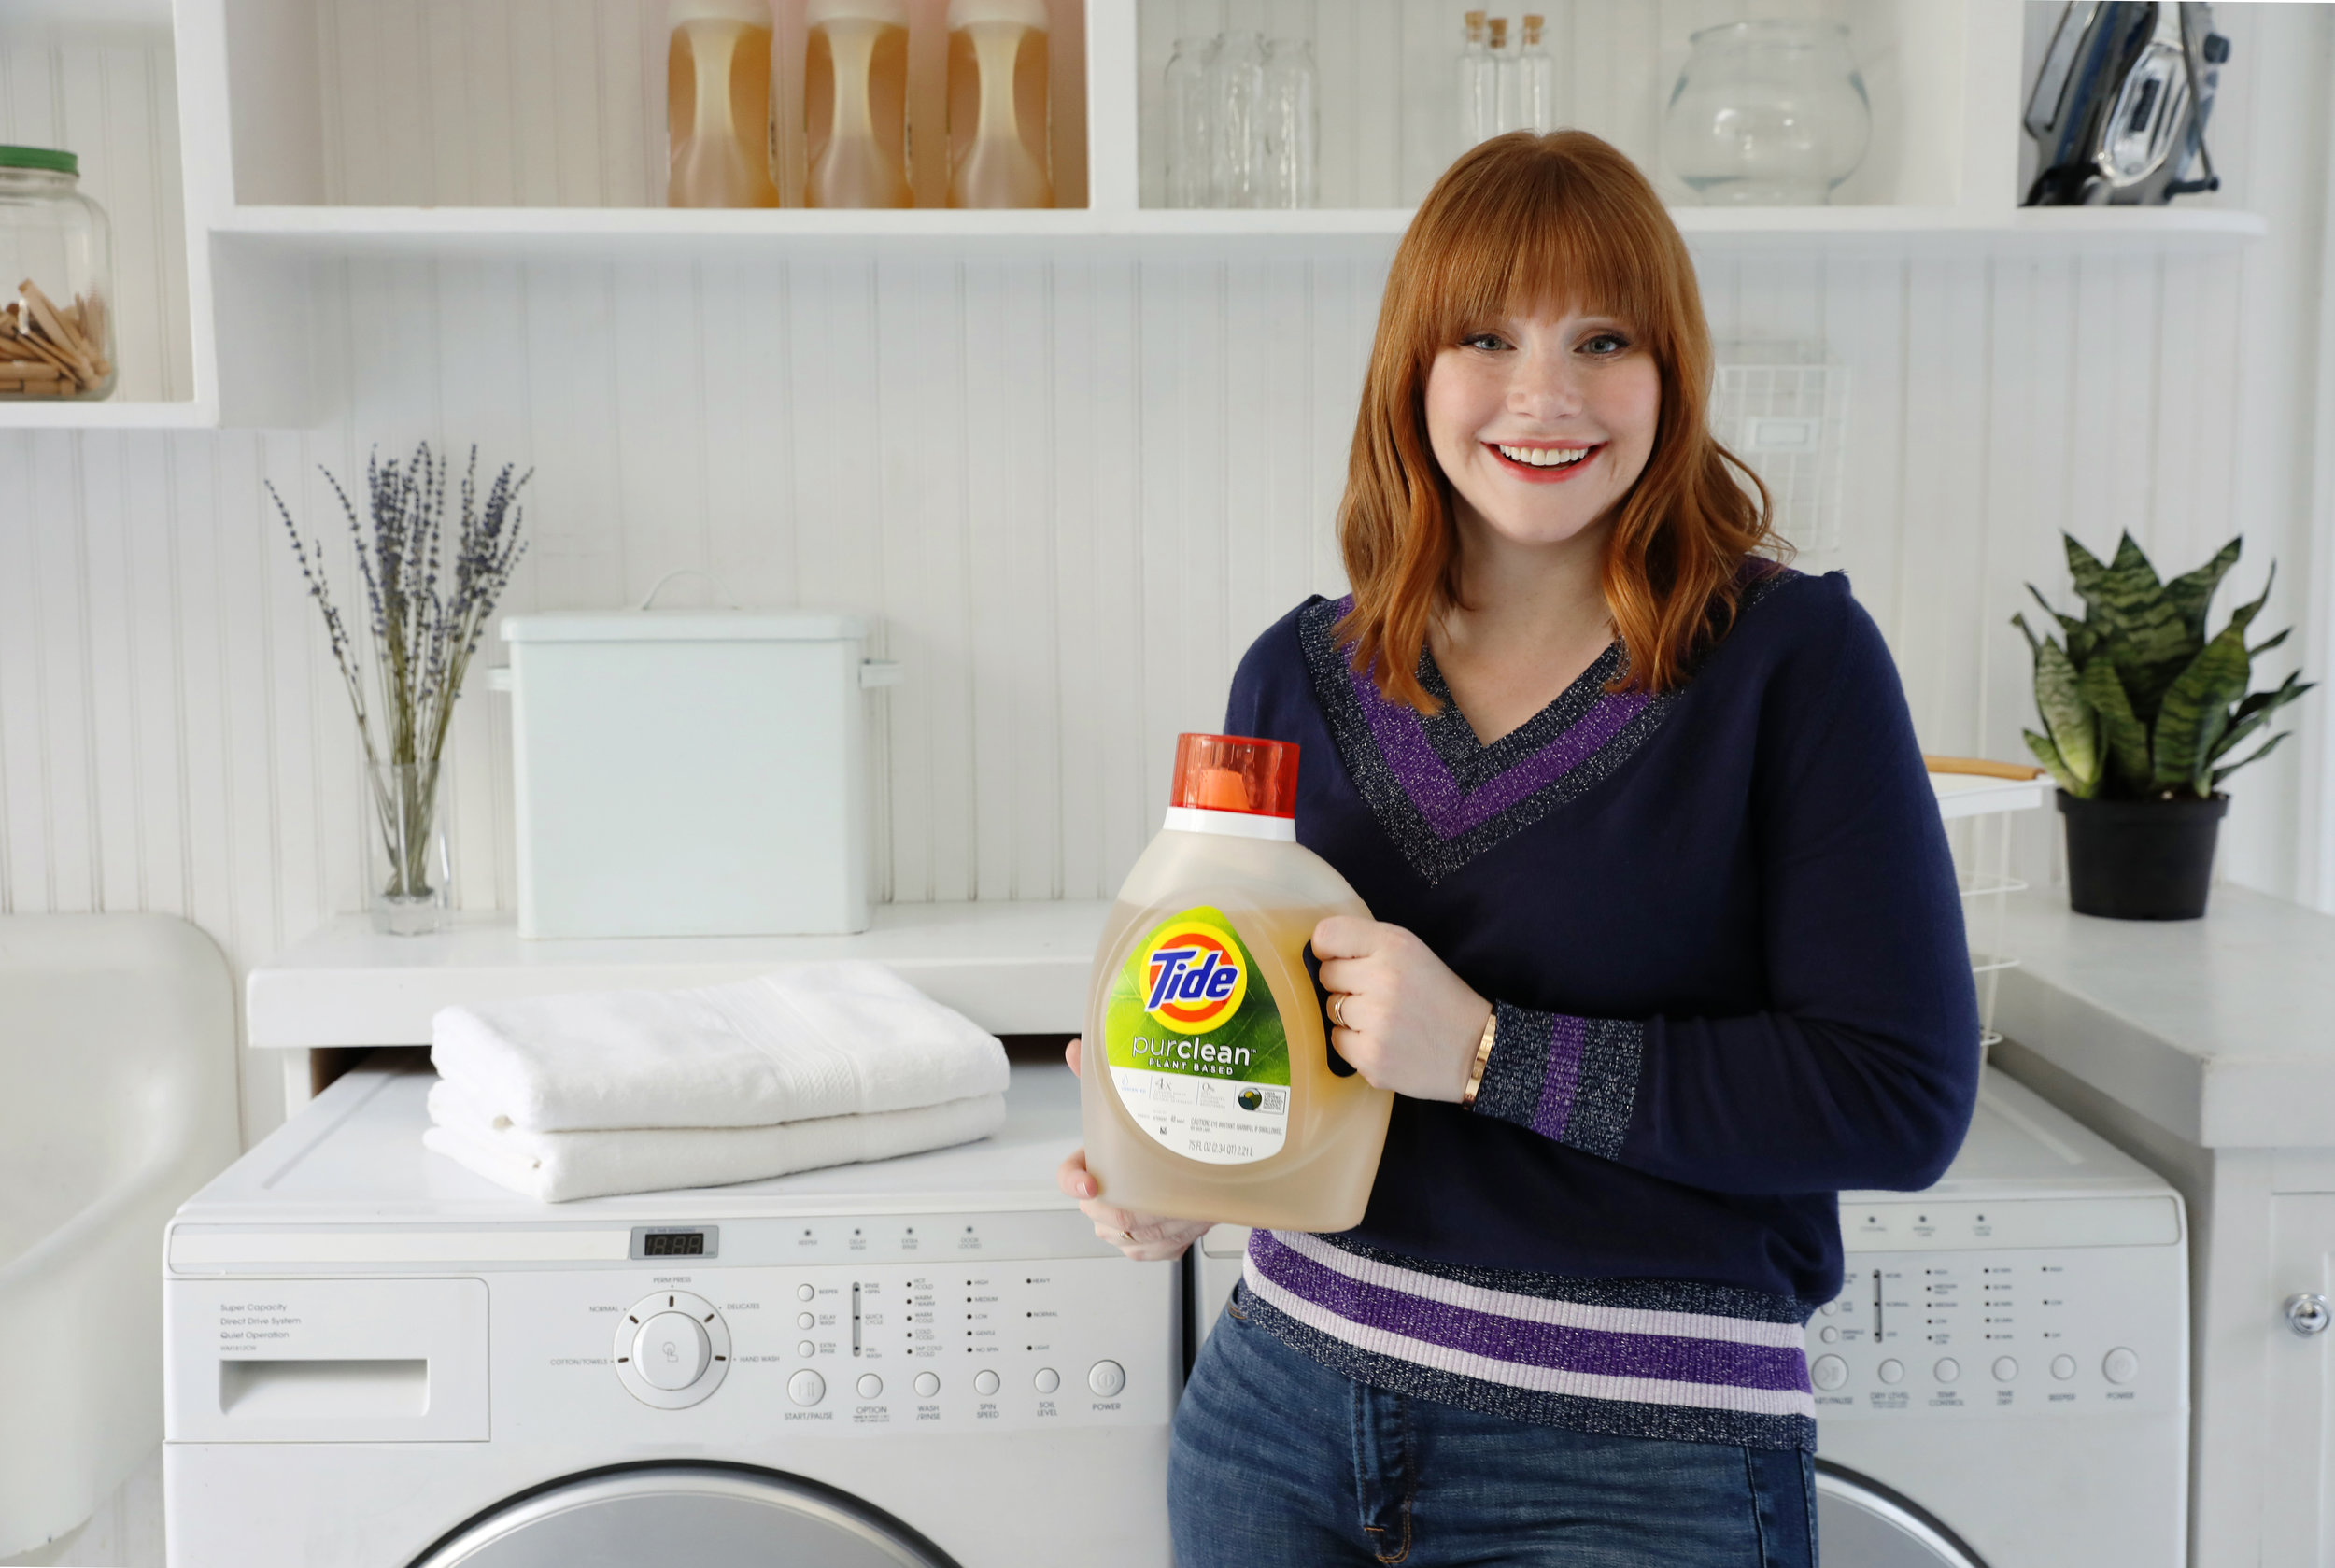 NYC commercial lifestyle photographer JENNIFER LAVELLE PHOTOGRAPHY - Procter & Gamble, Tide Purclean, P&G, Bryce Dallas Howard, New York City lifestyle photographer, Procter & Gamble